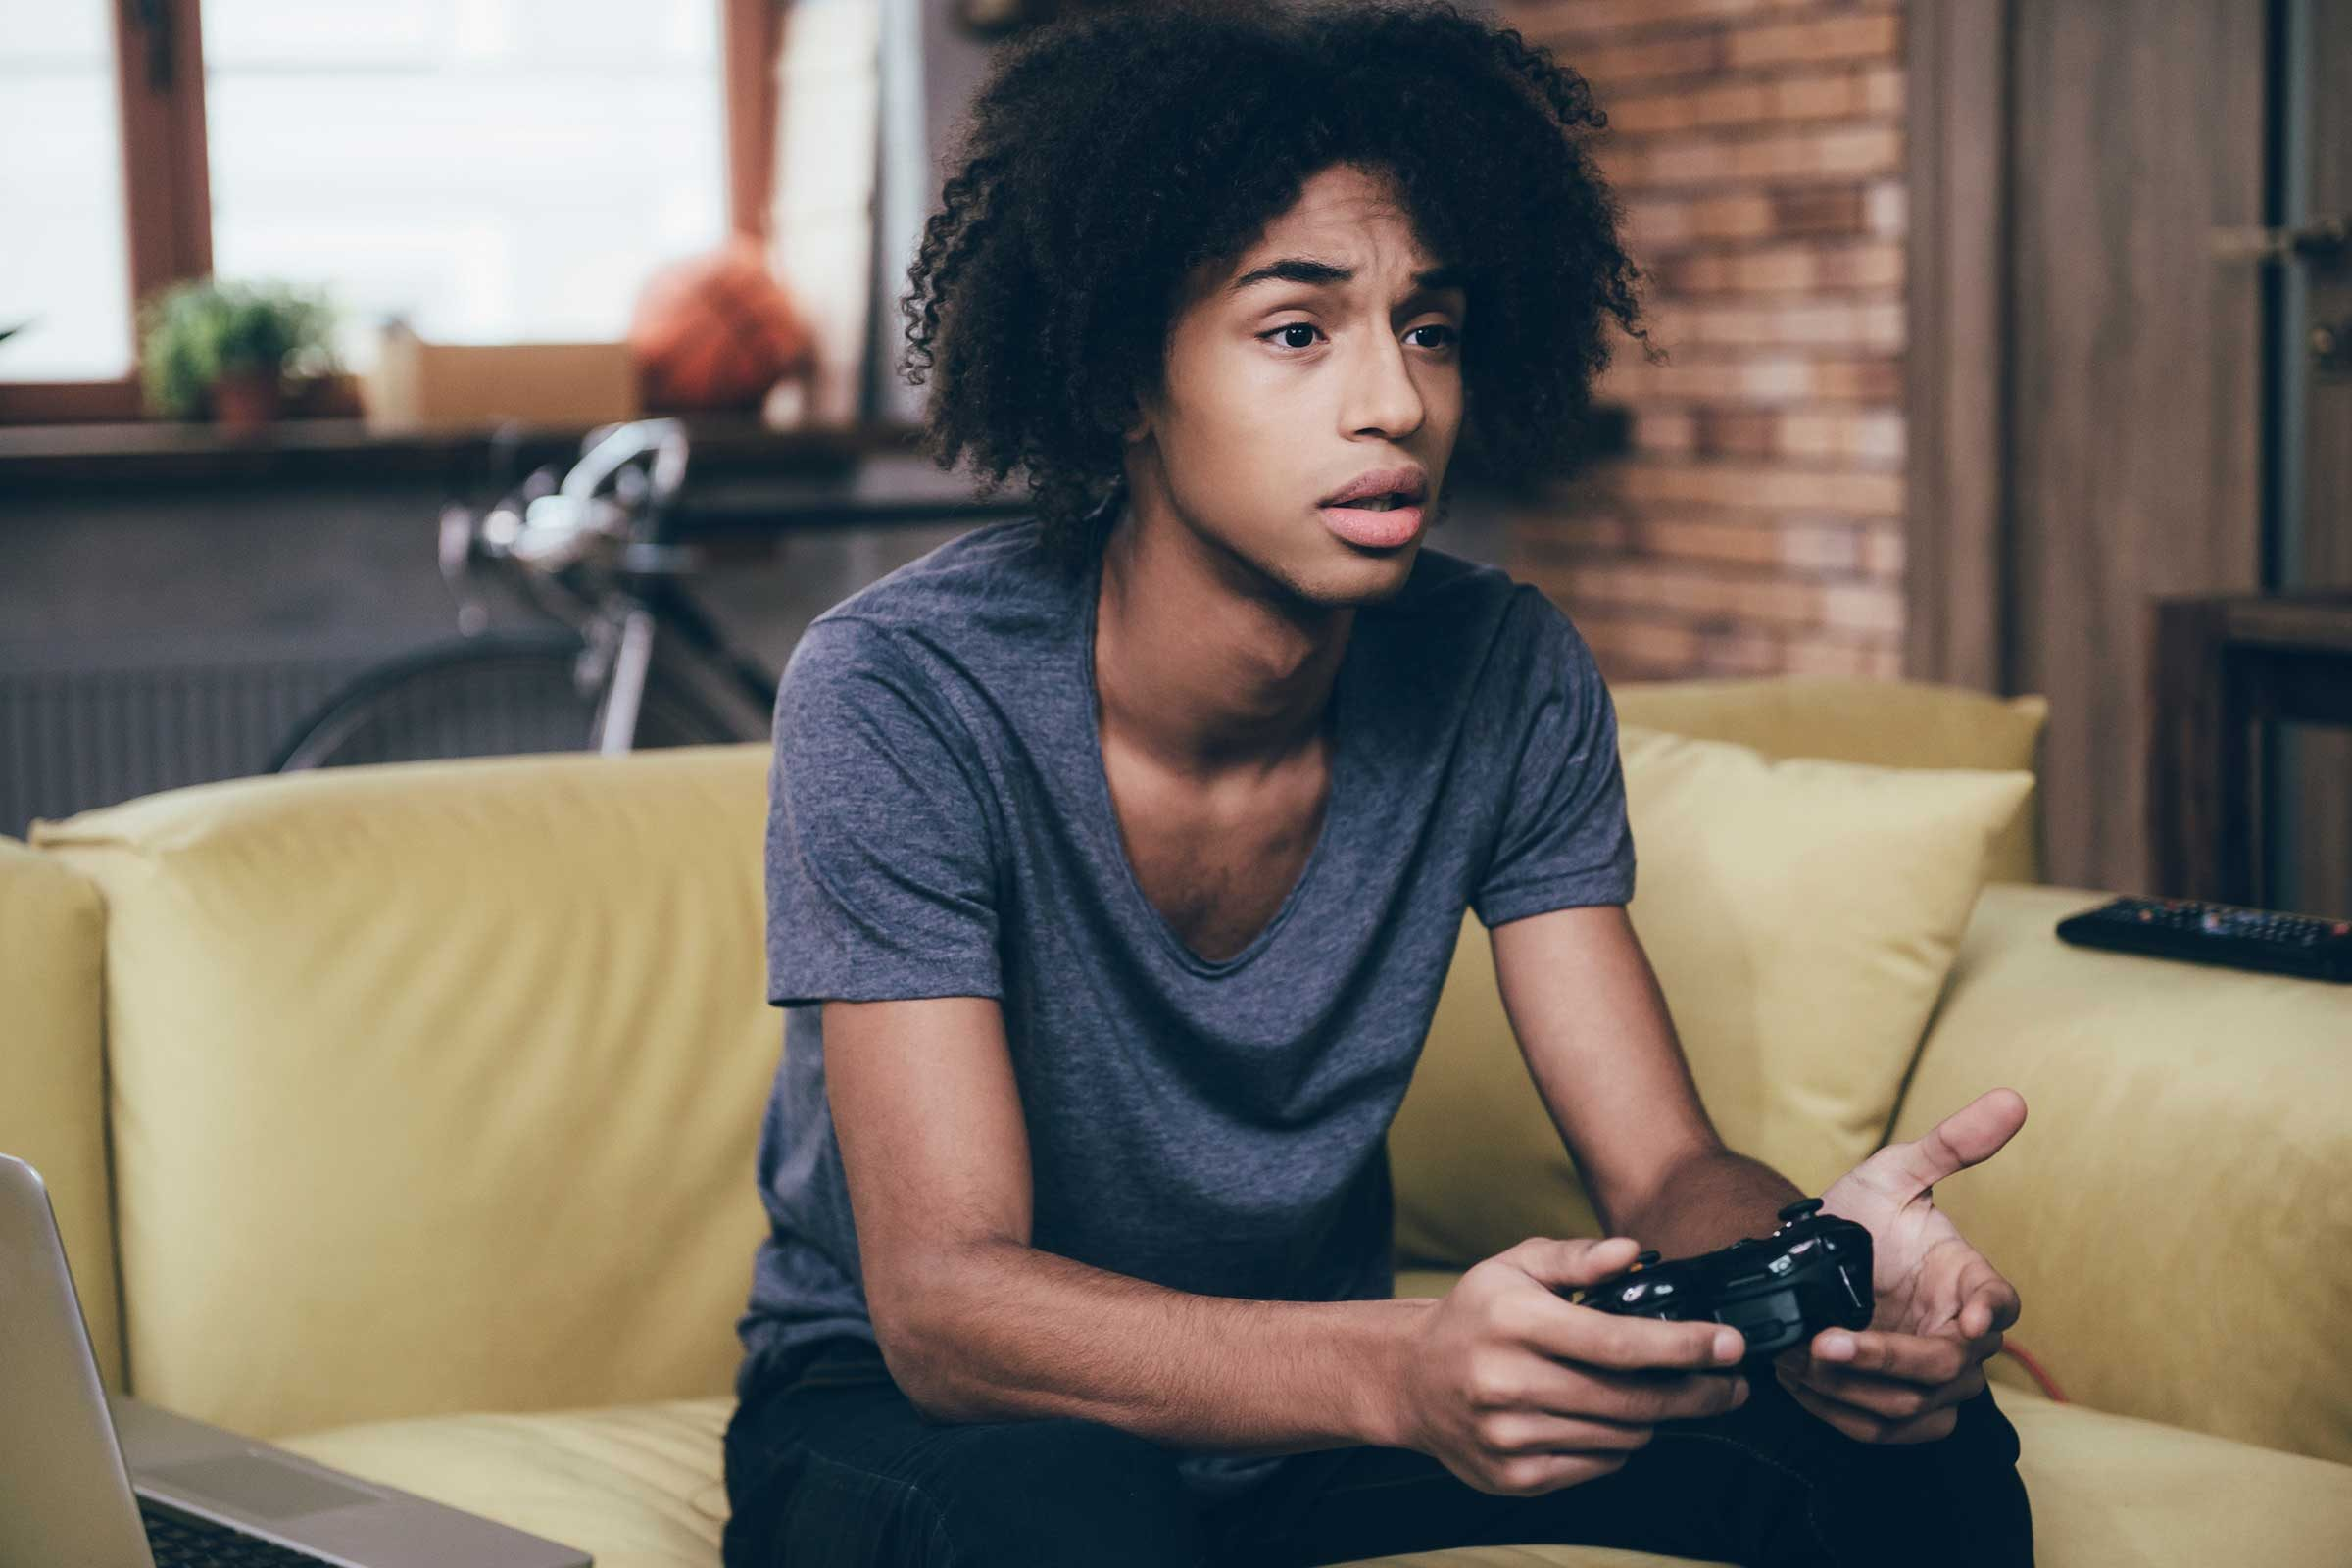 the benefits of video games Action video gameplay: benefits and dangers while evidence suggests that action video games enhance higher-order brain functions, the violence built into most commercial titles is far from beneficial.